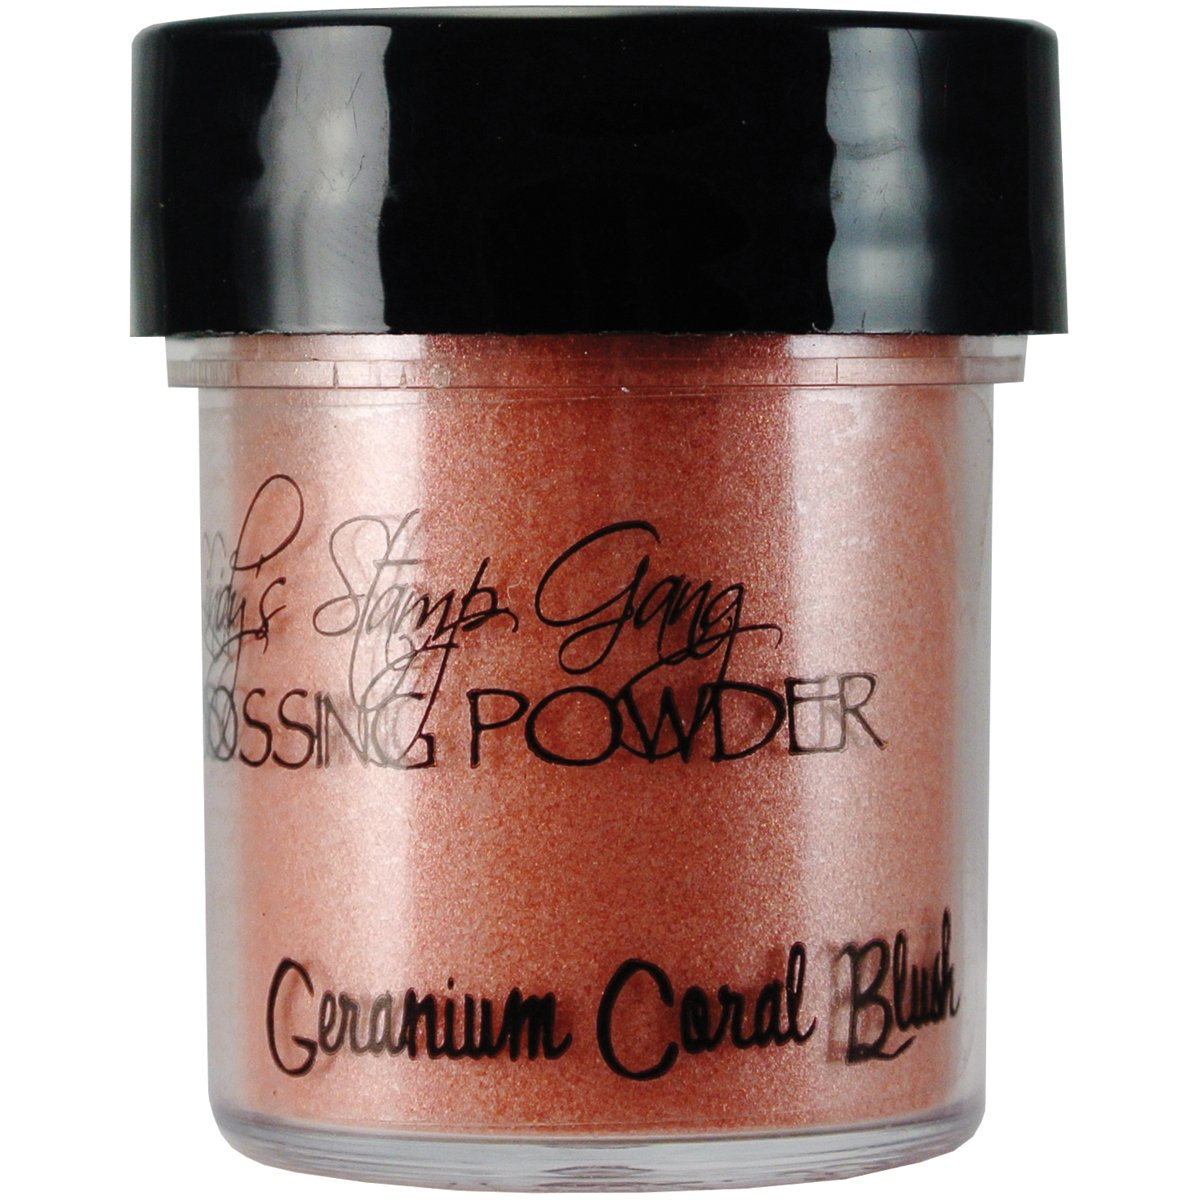 Lindy's Stamp Gang 2-Tone Embossing Powder, 0.5-Ounce, Geranium Coral Blush Lindy' s 401061